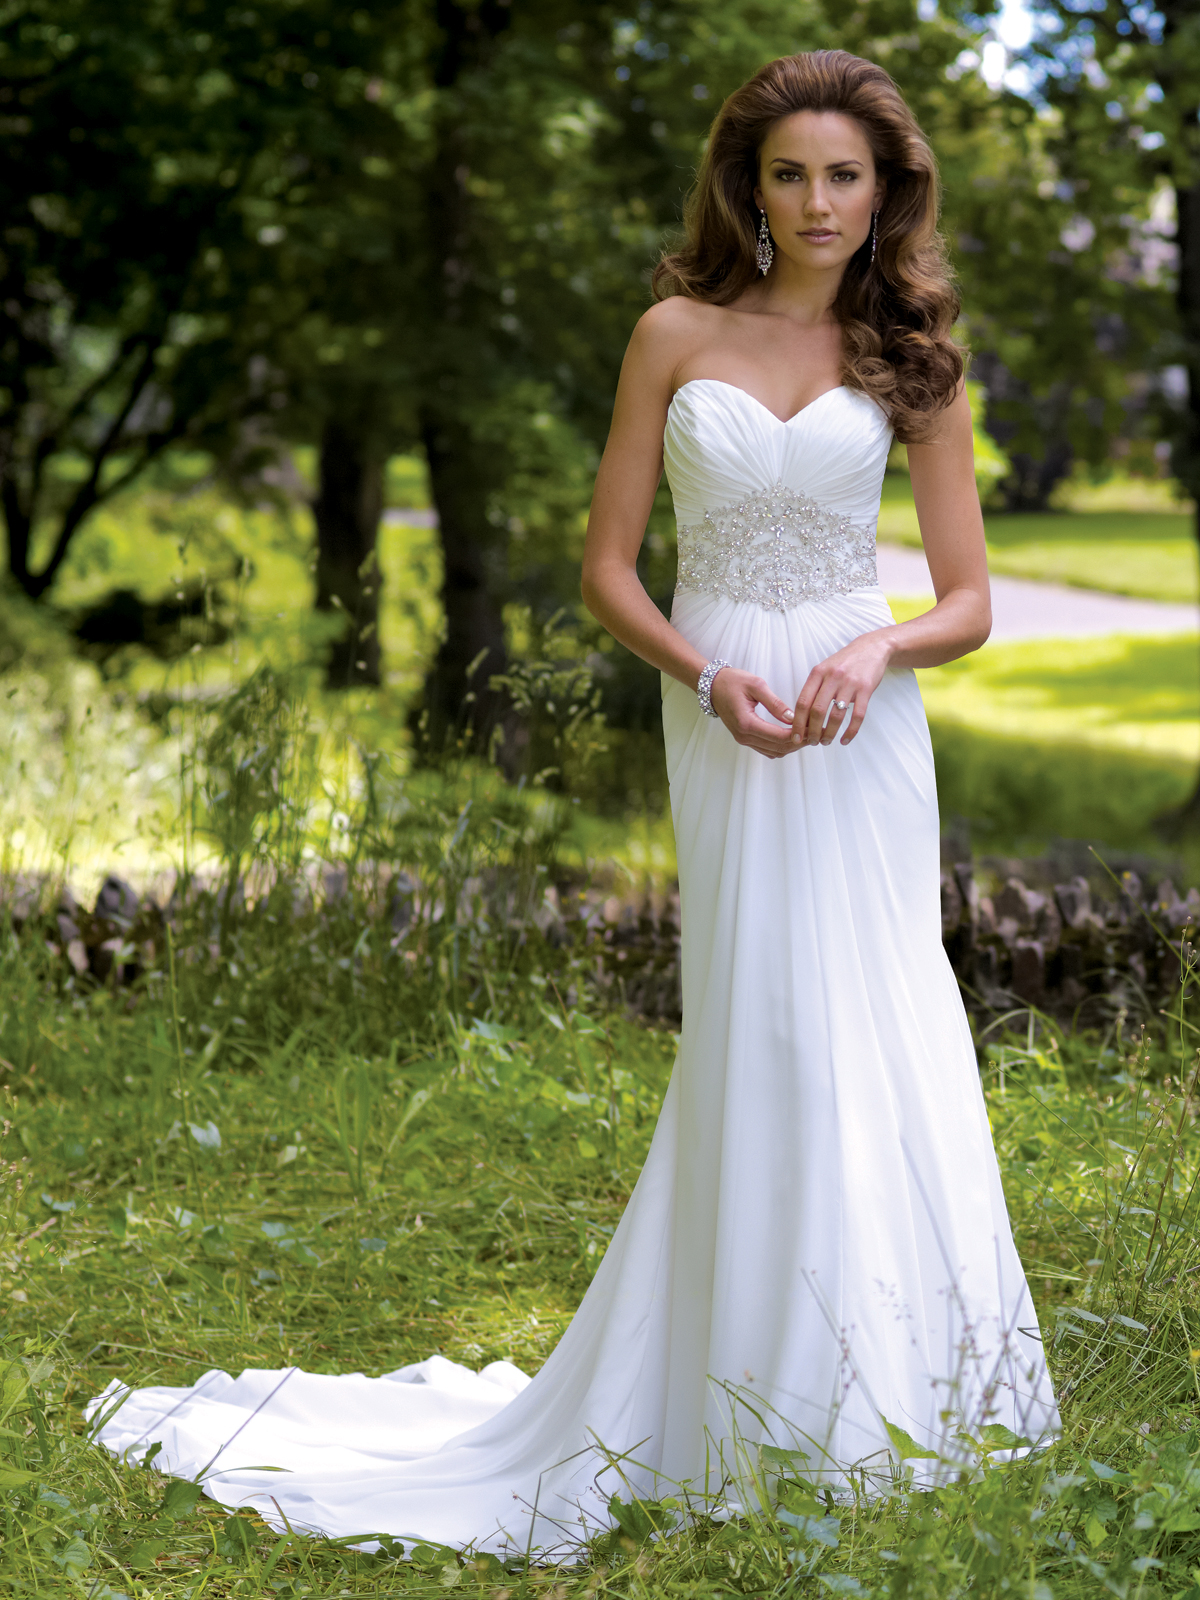 Casual wedding dresses dressed up girl for Dresses for girls wedding